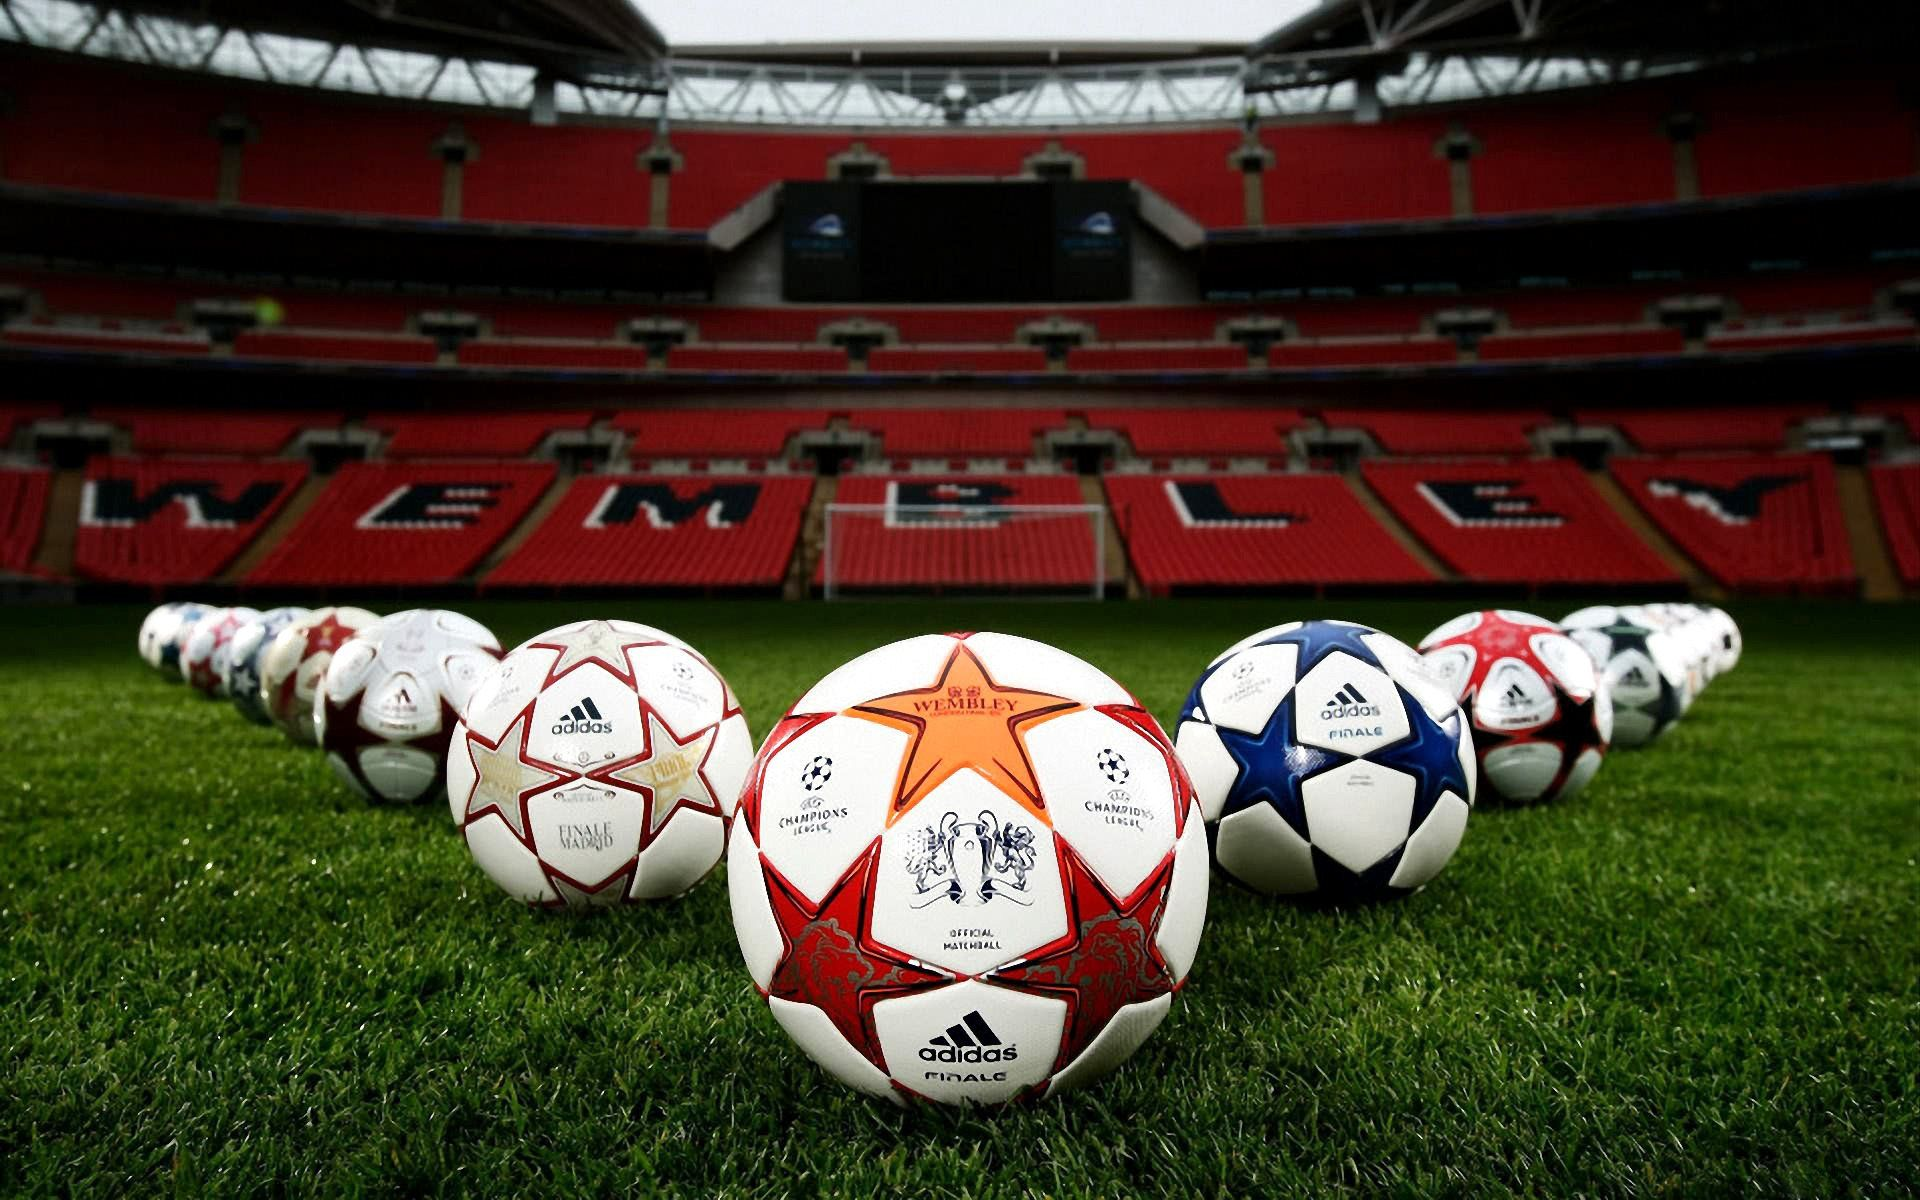 Adidas soccer balls background hd hd wallpapers download free adidas soccer balls background hd hd wallpapers download free windows wallpapers amazing colourful 4k picture lovely 19201200 hd wallpaper desktop voltagebd Choice Image